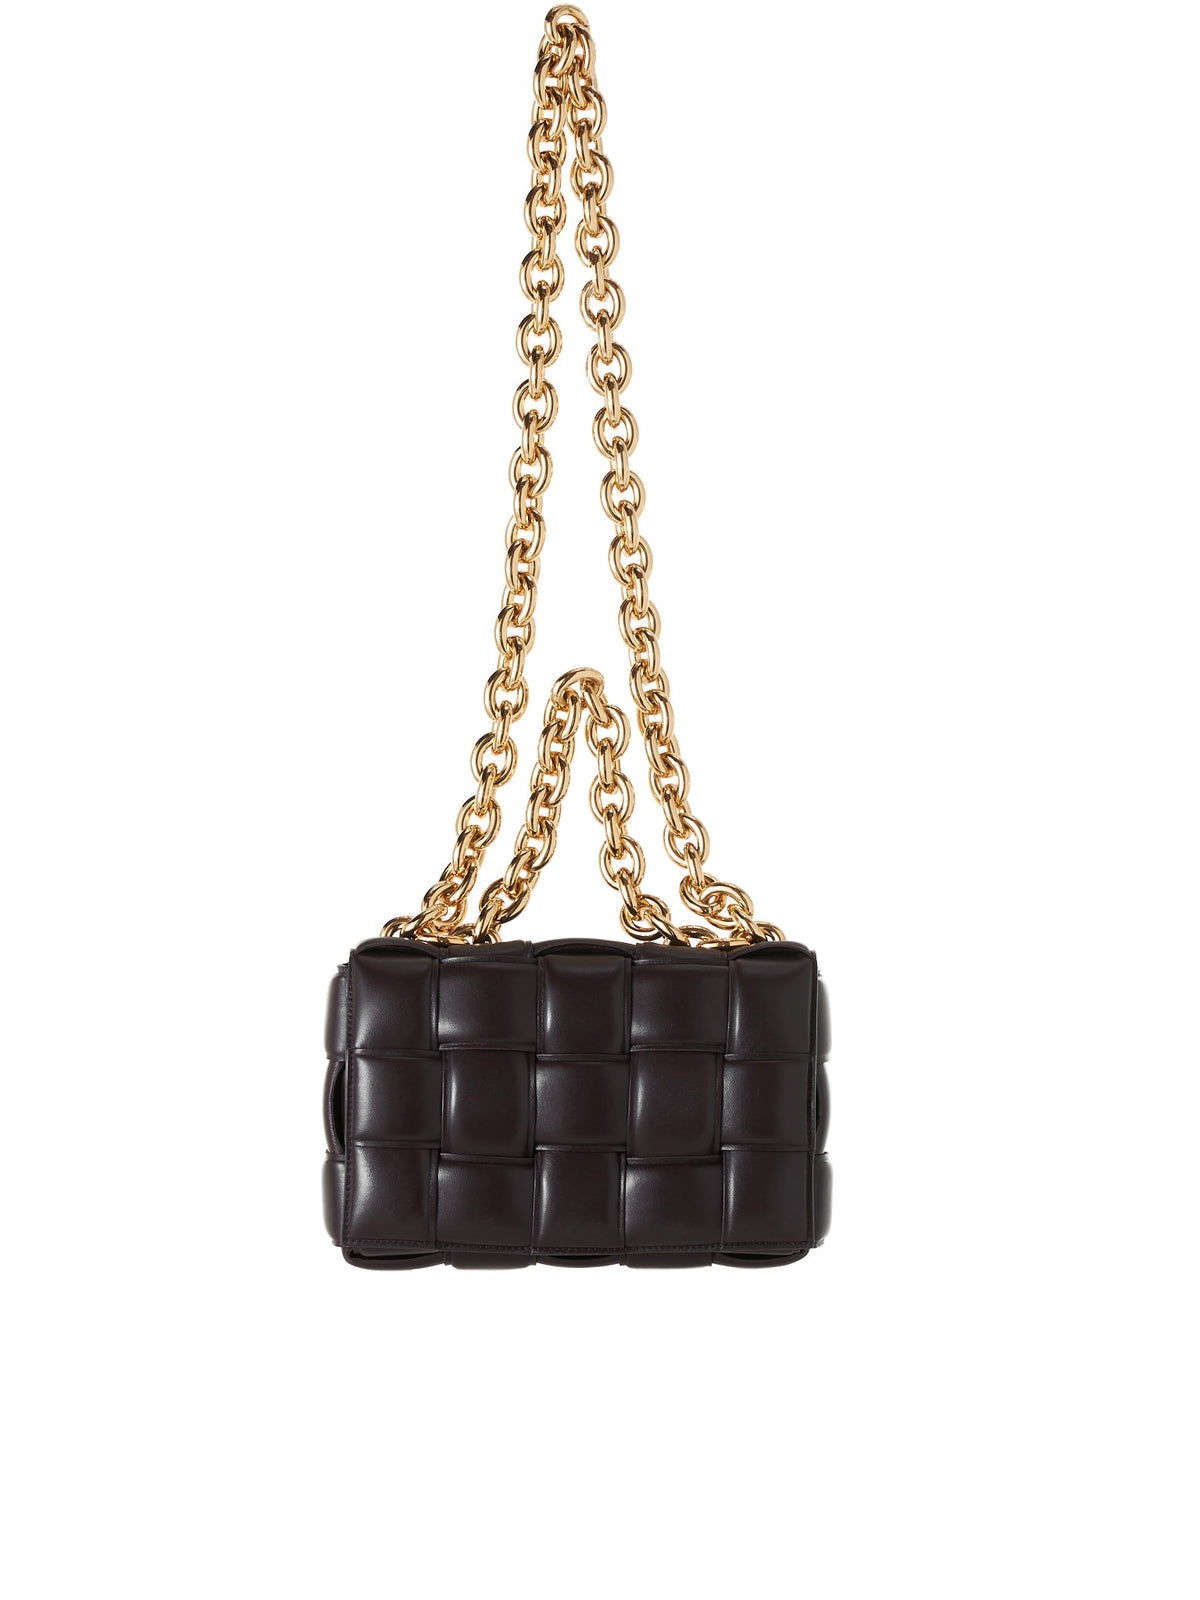 Chain Cassette Bag (631421VBWZ0-2132-CHOCOLATE)